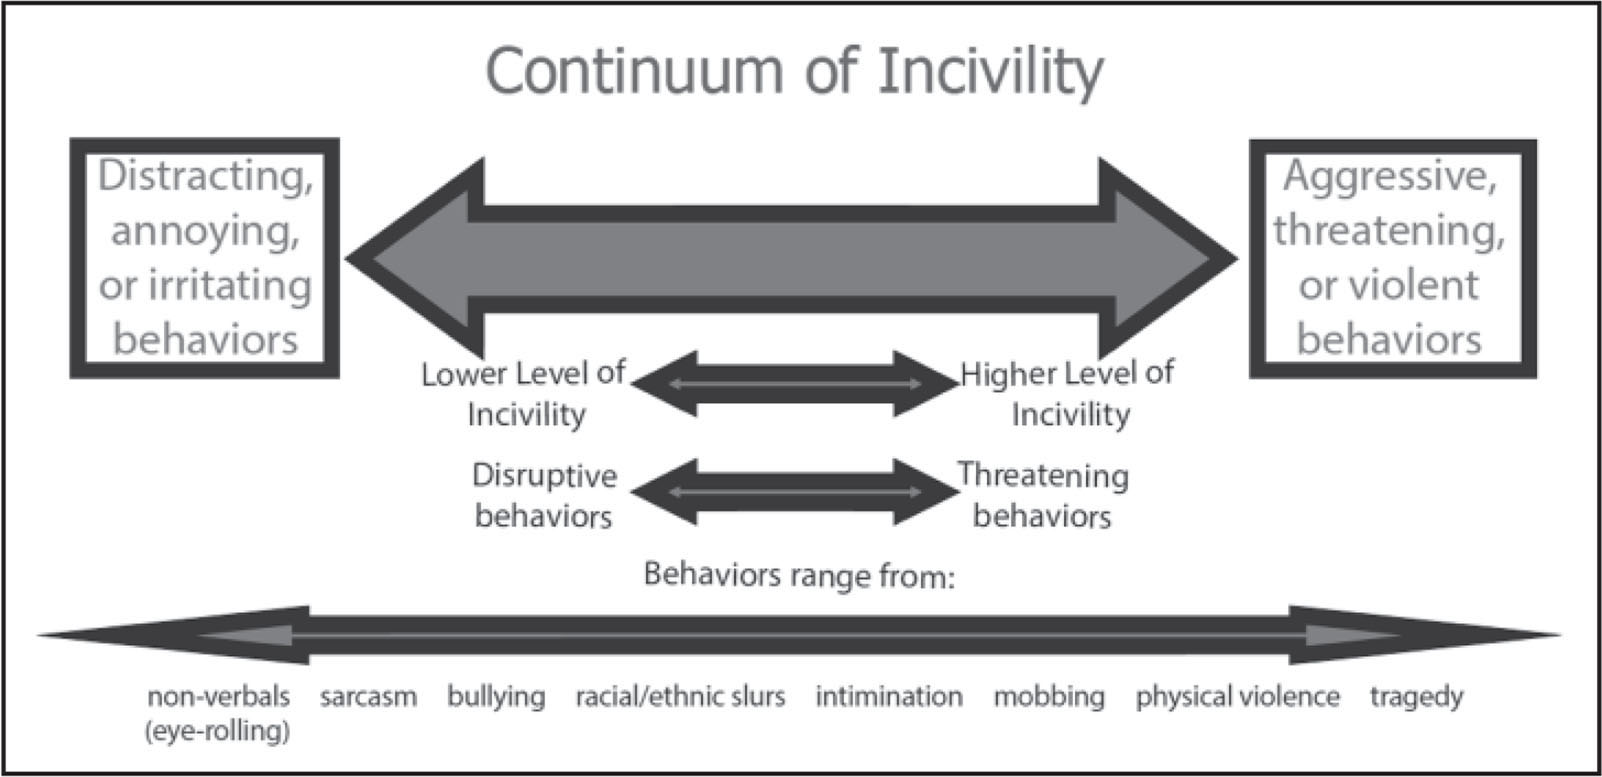 Continuum of Incivility. Copyright 2009 by Clark; revised 2013, 2014.